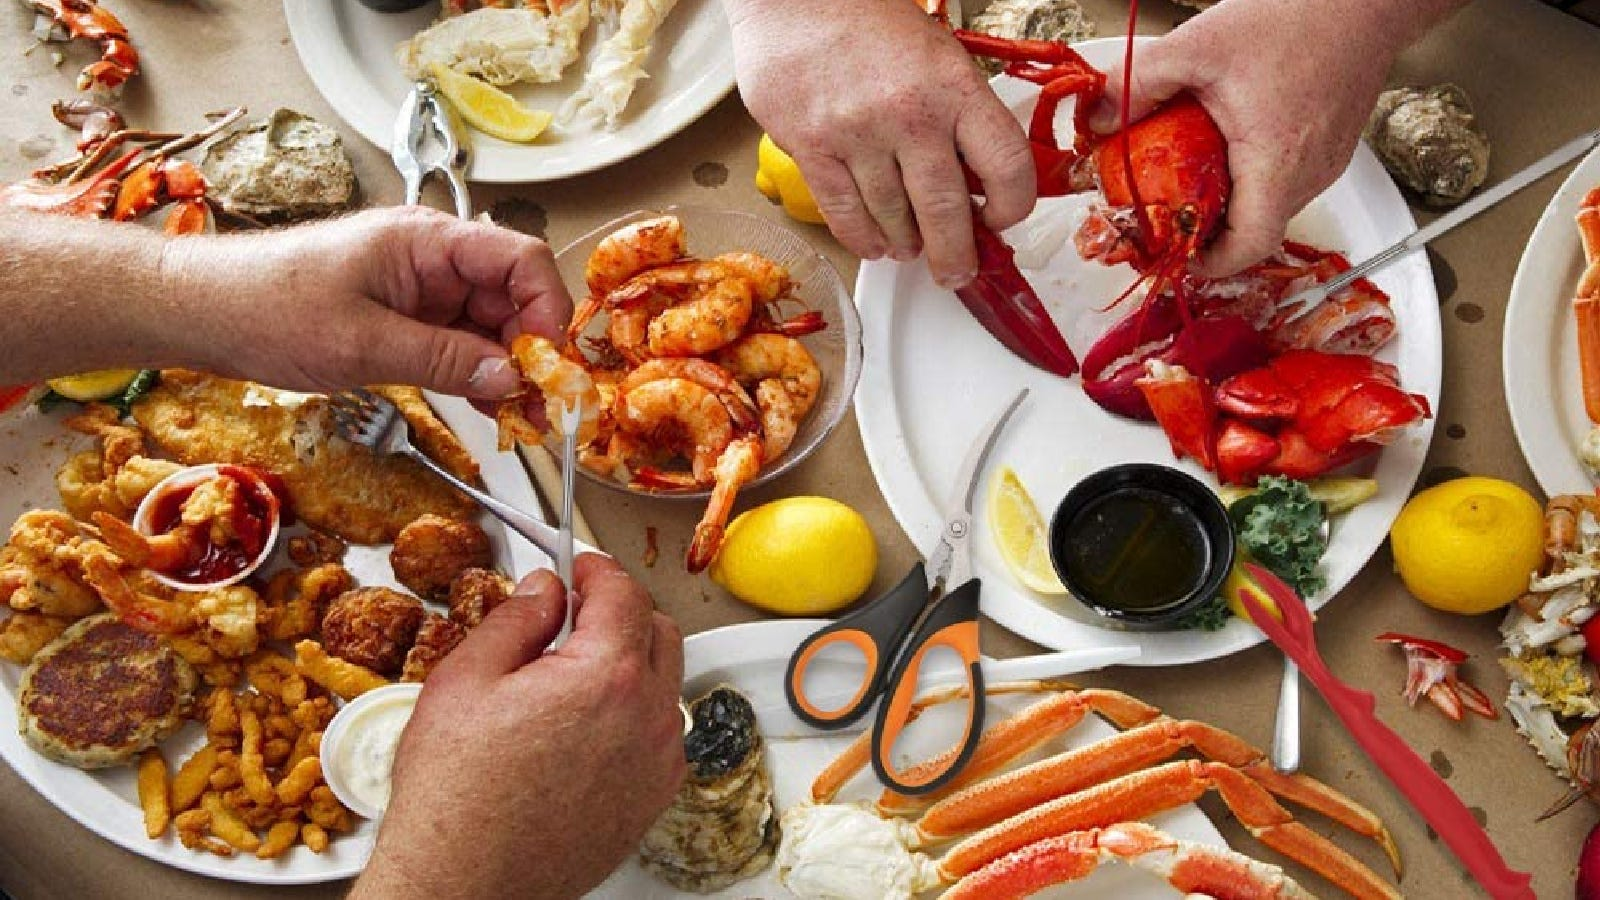 Two people enjoying a seafood feast, using the HIWARE seafood tool set.